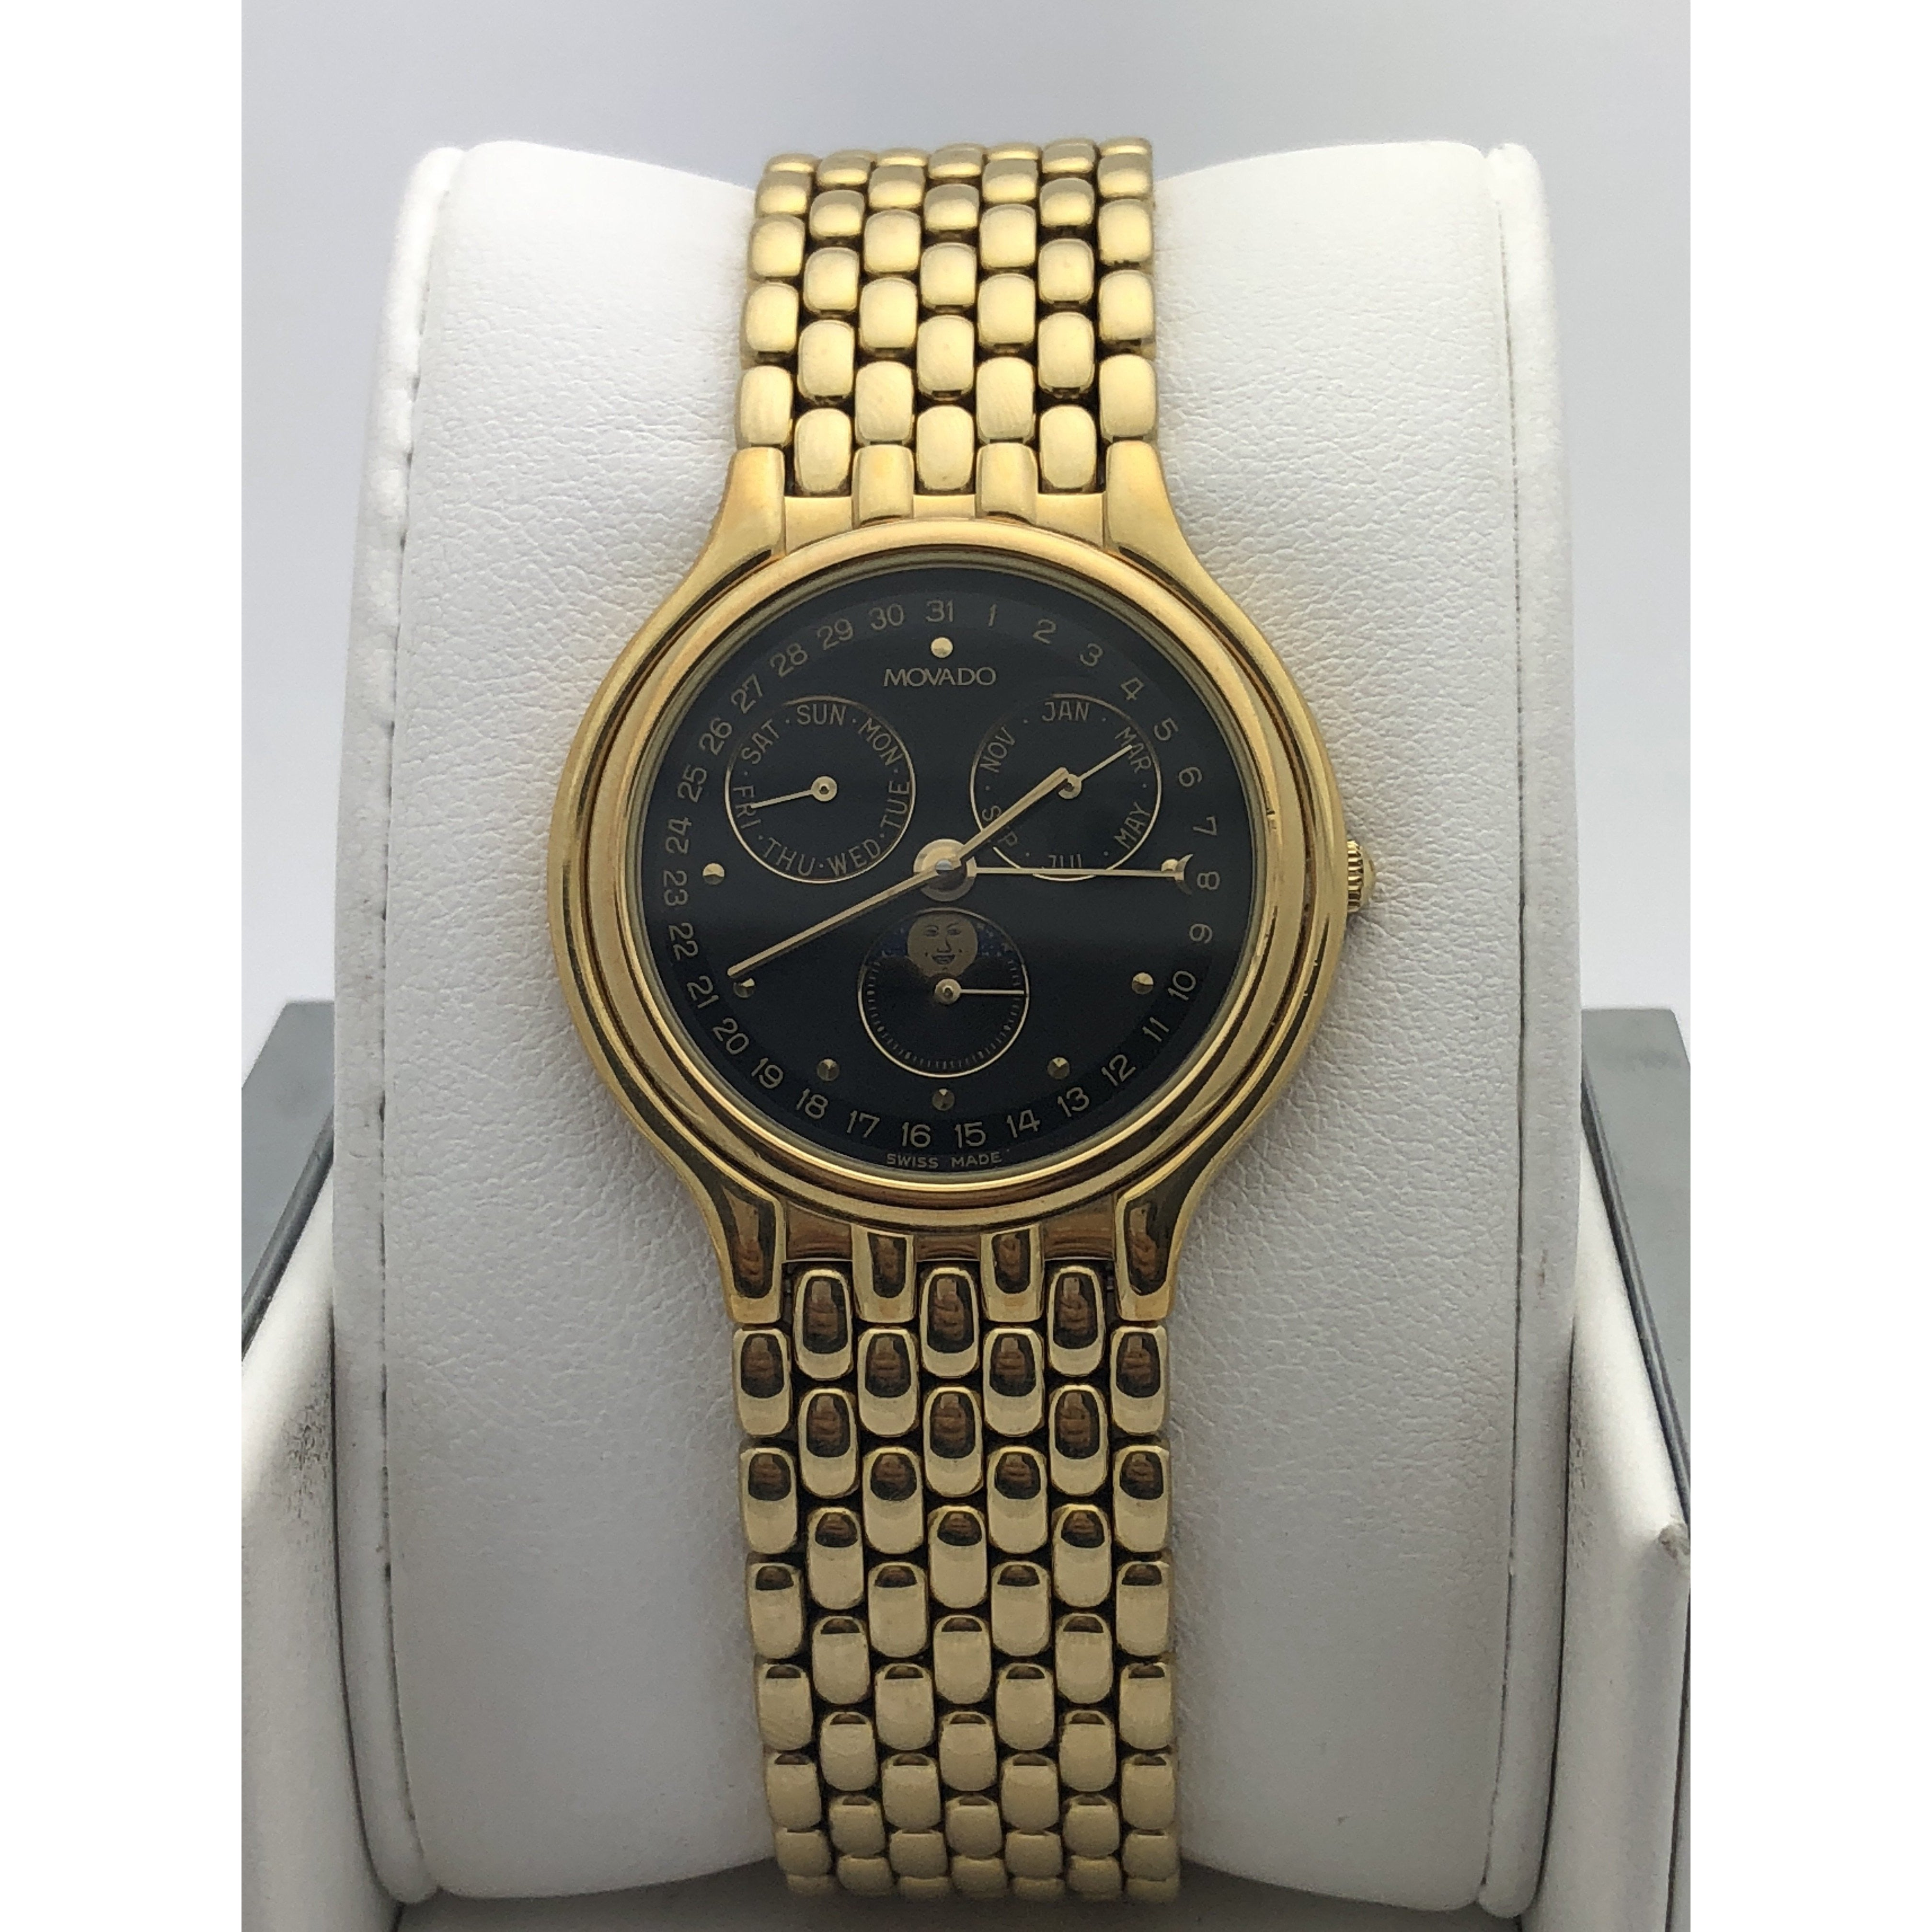 12bad66fcc2 Movado Ladies Moon Phase Black Dial Gold Tone Stainless Steel Watch 468203